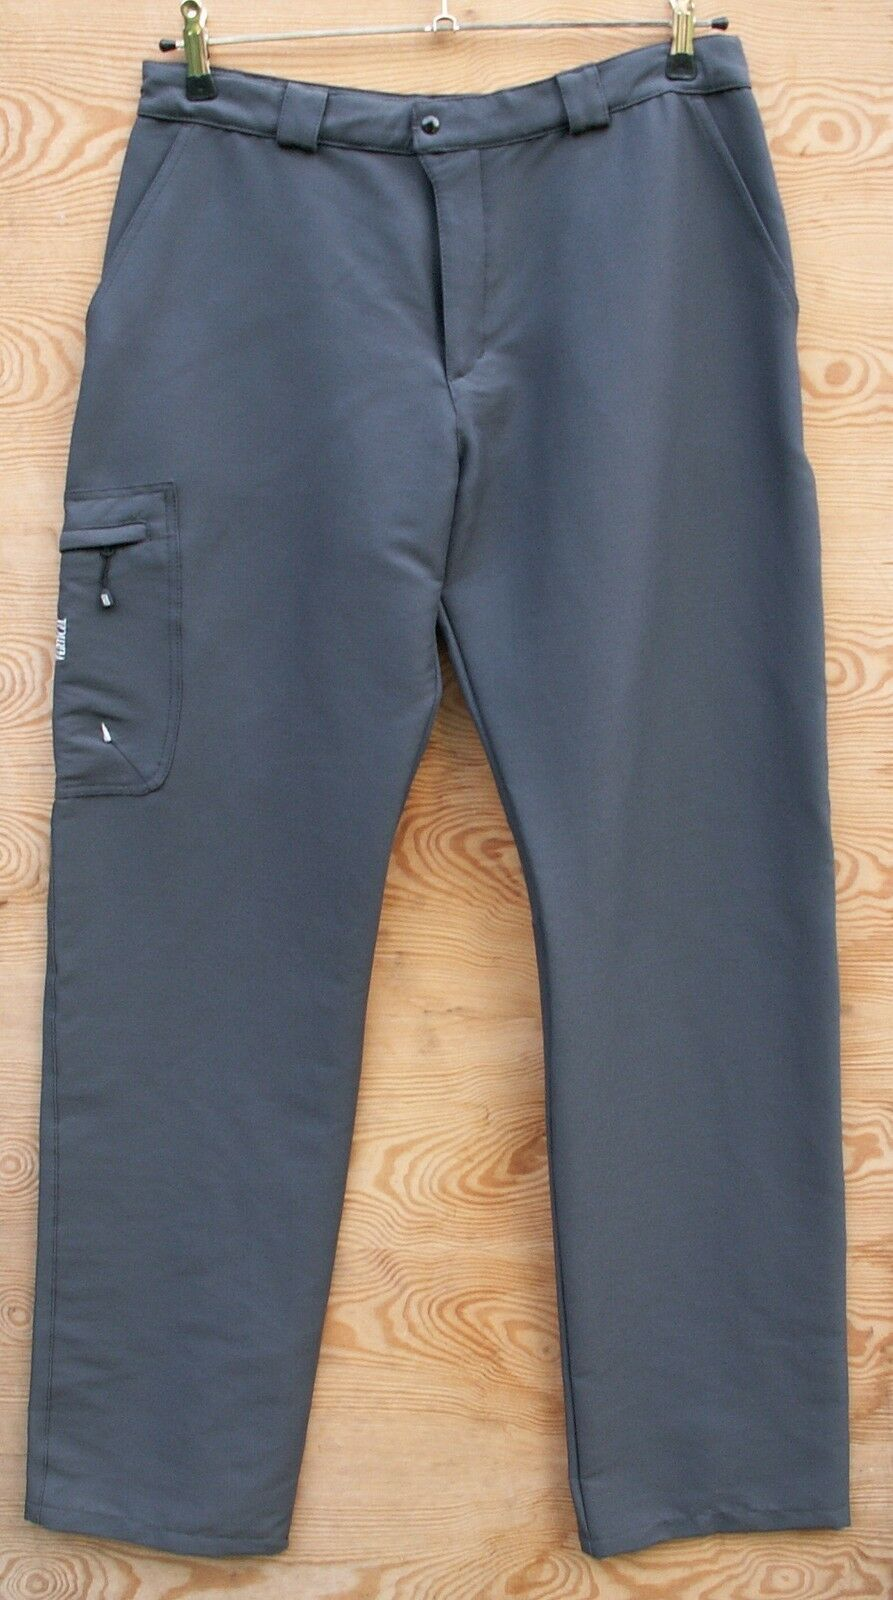 greencal Davos Pants, simple Soft shell trousers for men, Size 52